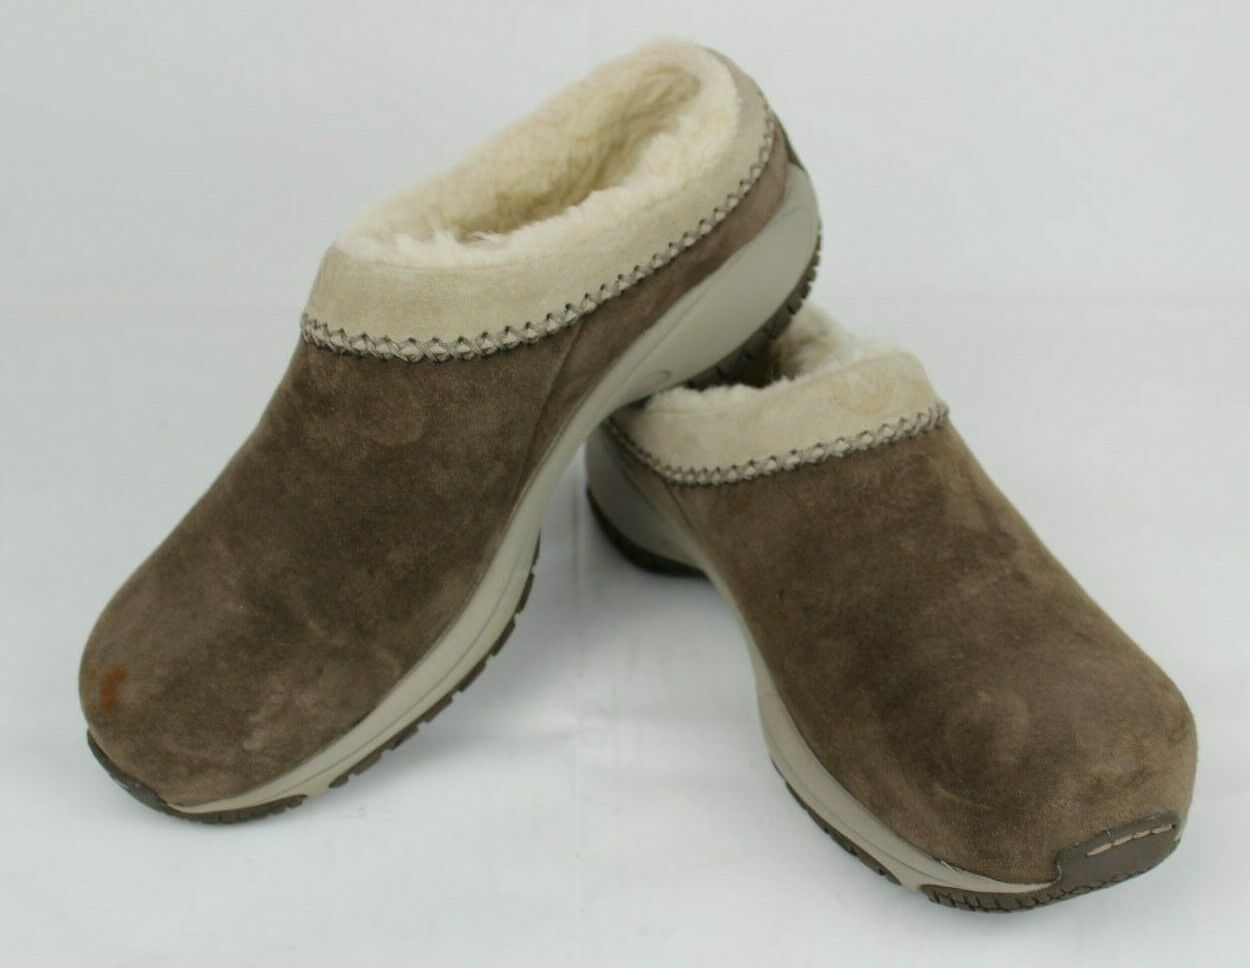 Merrell Encore chill stitch women's brown suede fleece lined clogs size 7